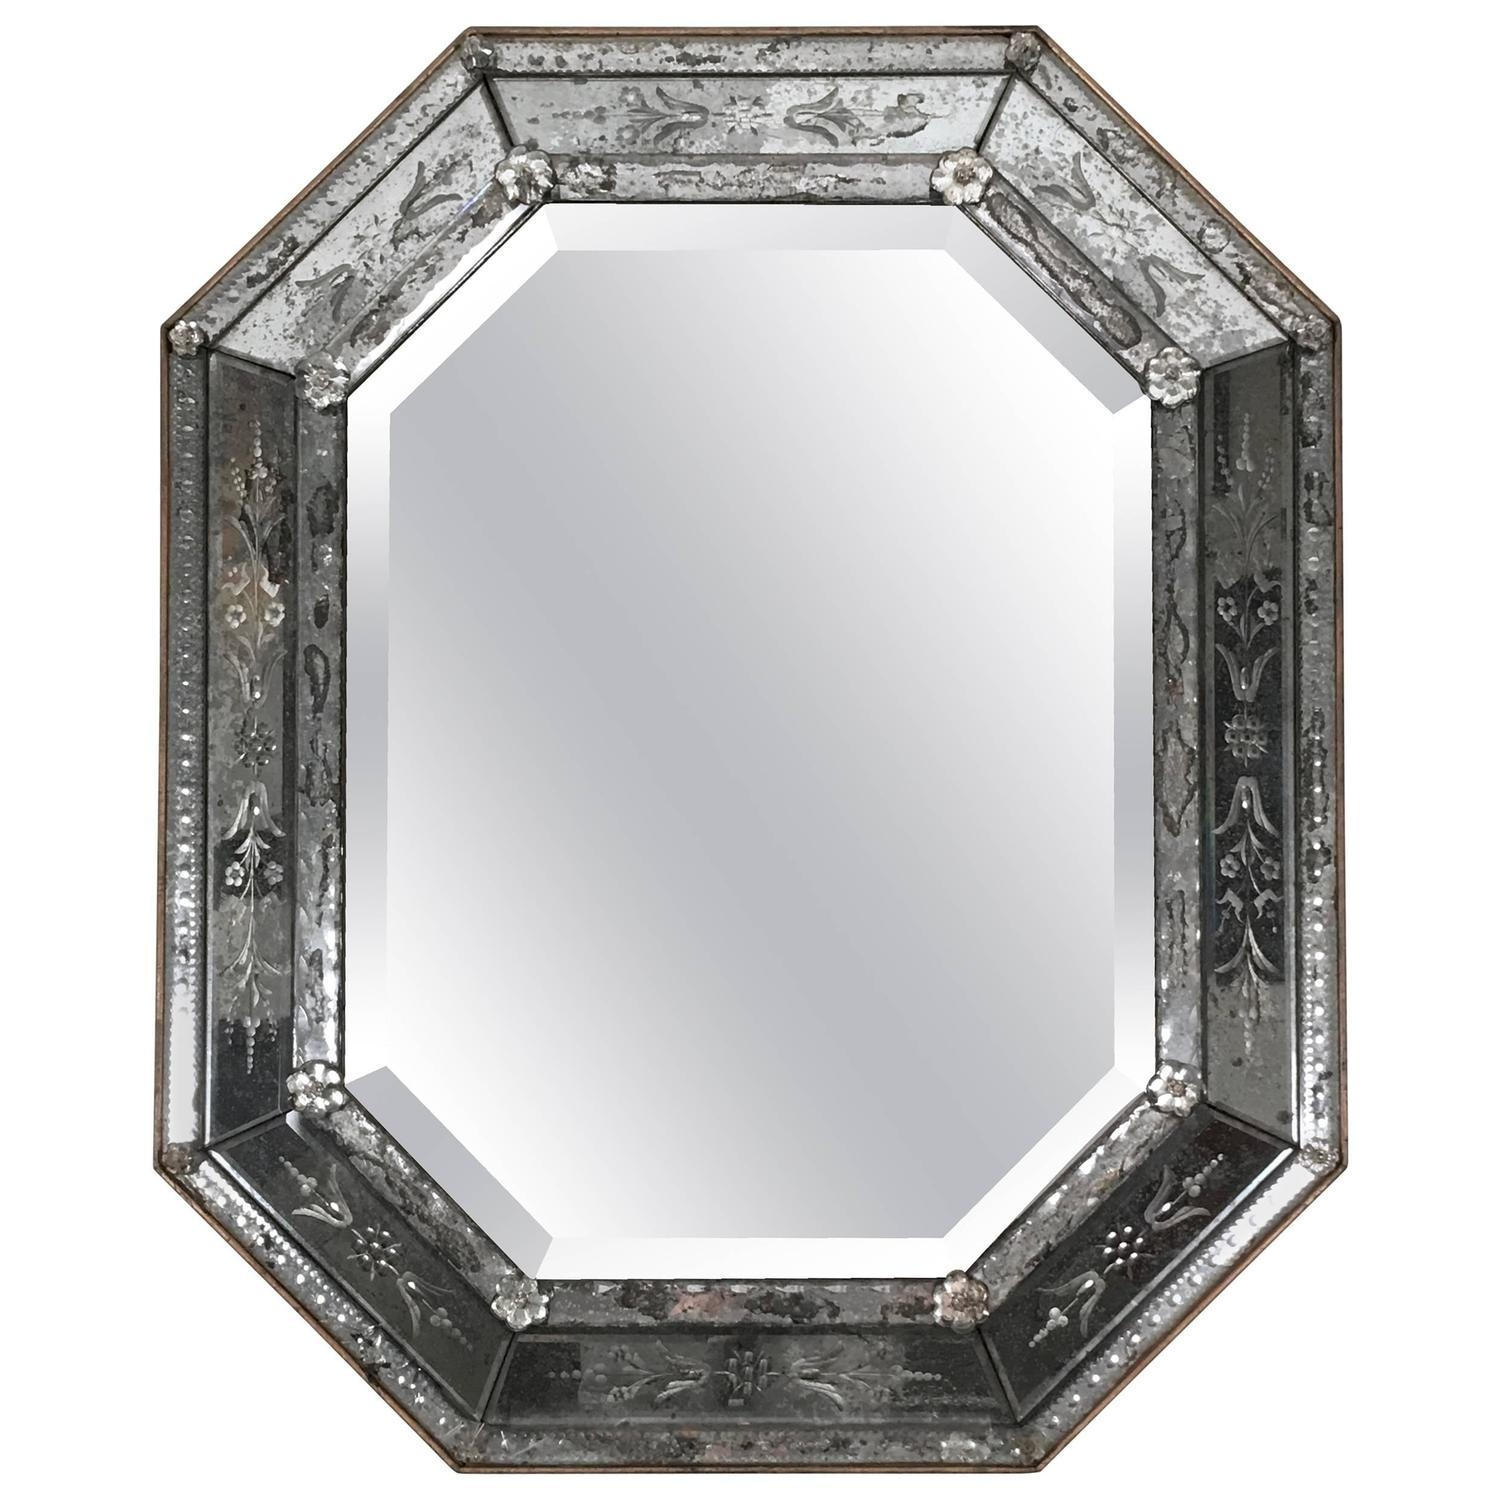 Venetian Etched Glass Octagonal Mirror At 1Stdibs Intended For Black Venetian Mirror (Image 15 of 20)